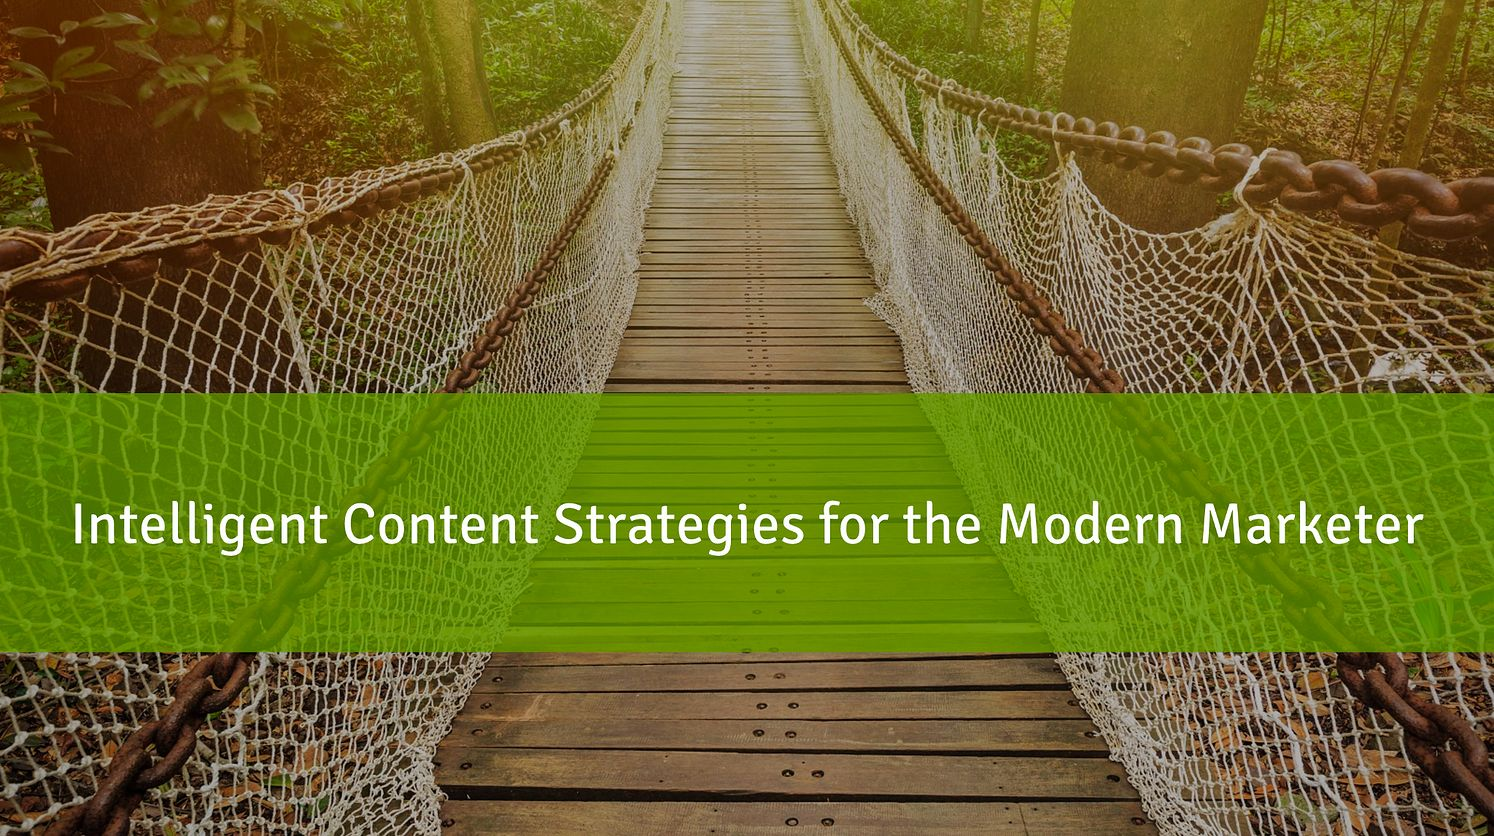 Intelligent Content Strategies for Marketers